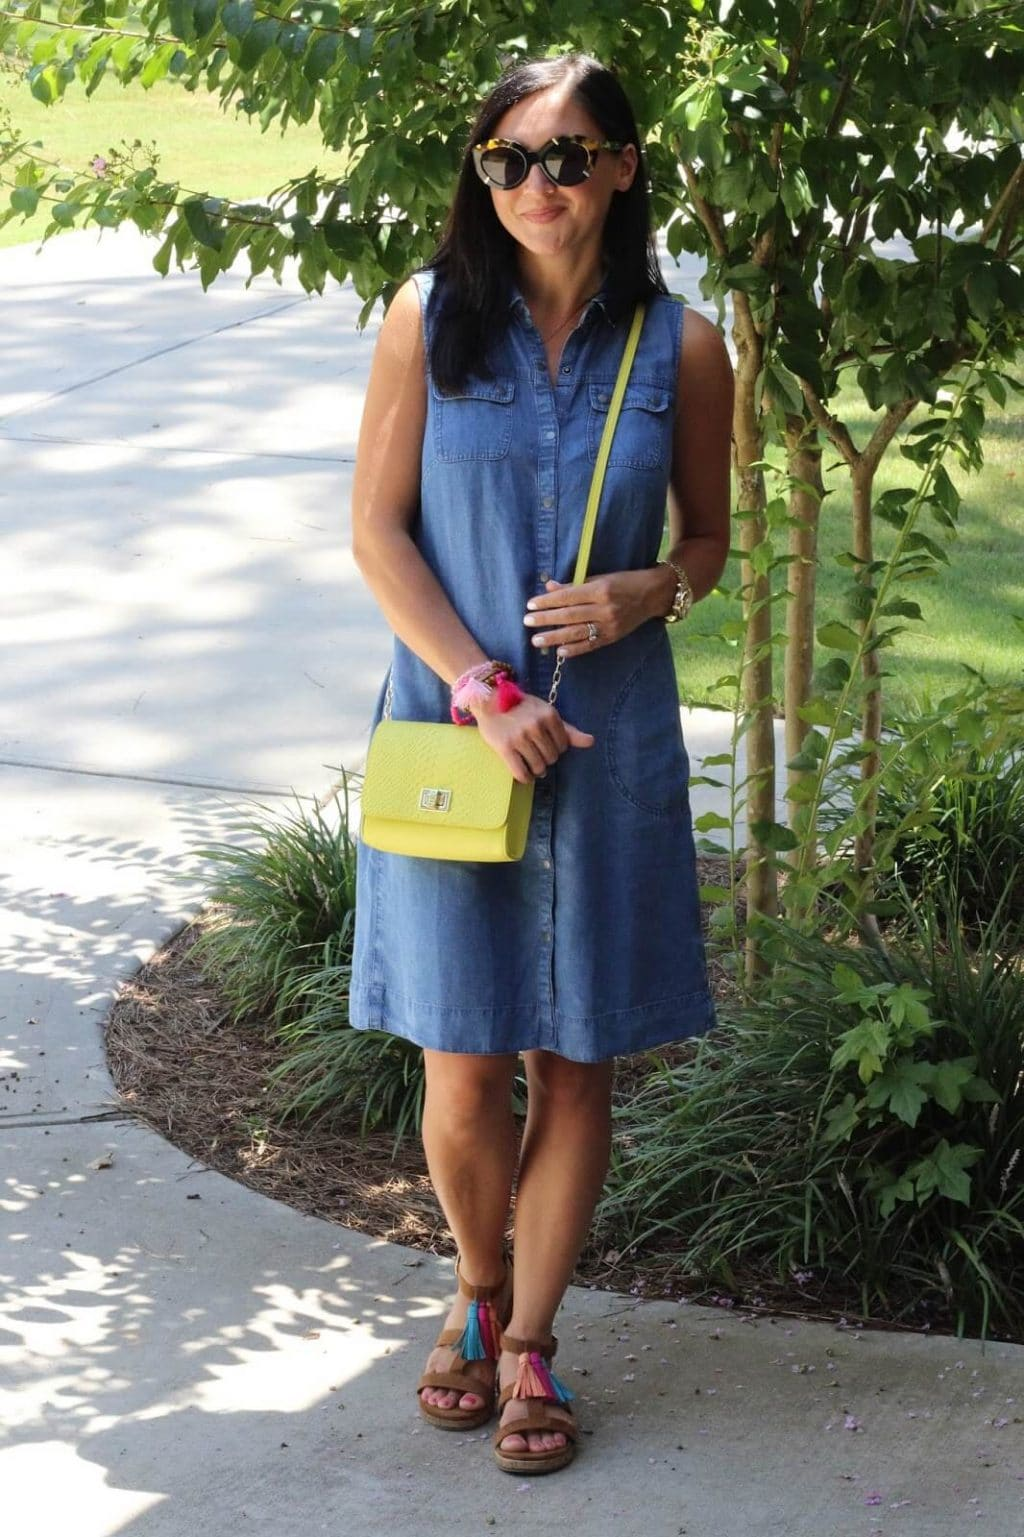 J Jill Style, denim dress, neon, tassels, karen walker flowerpatch